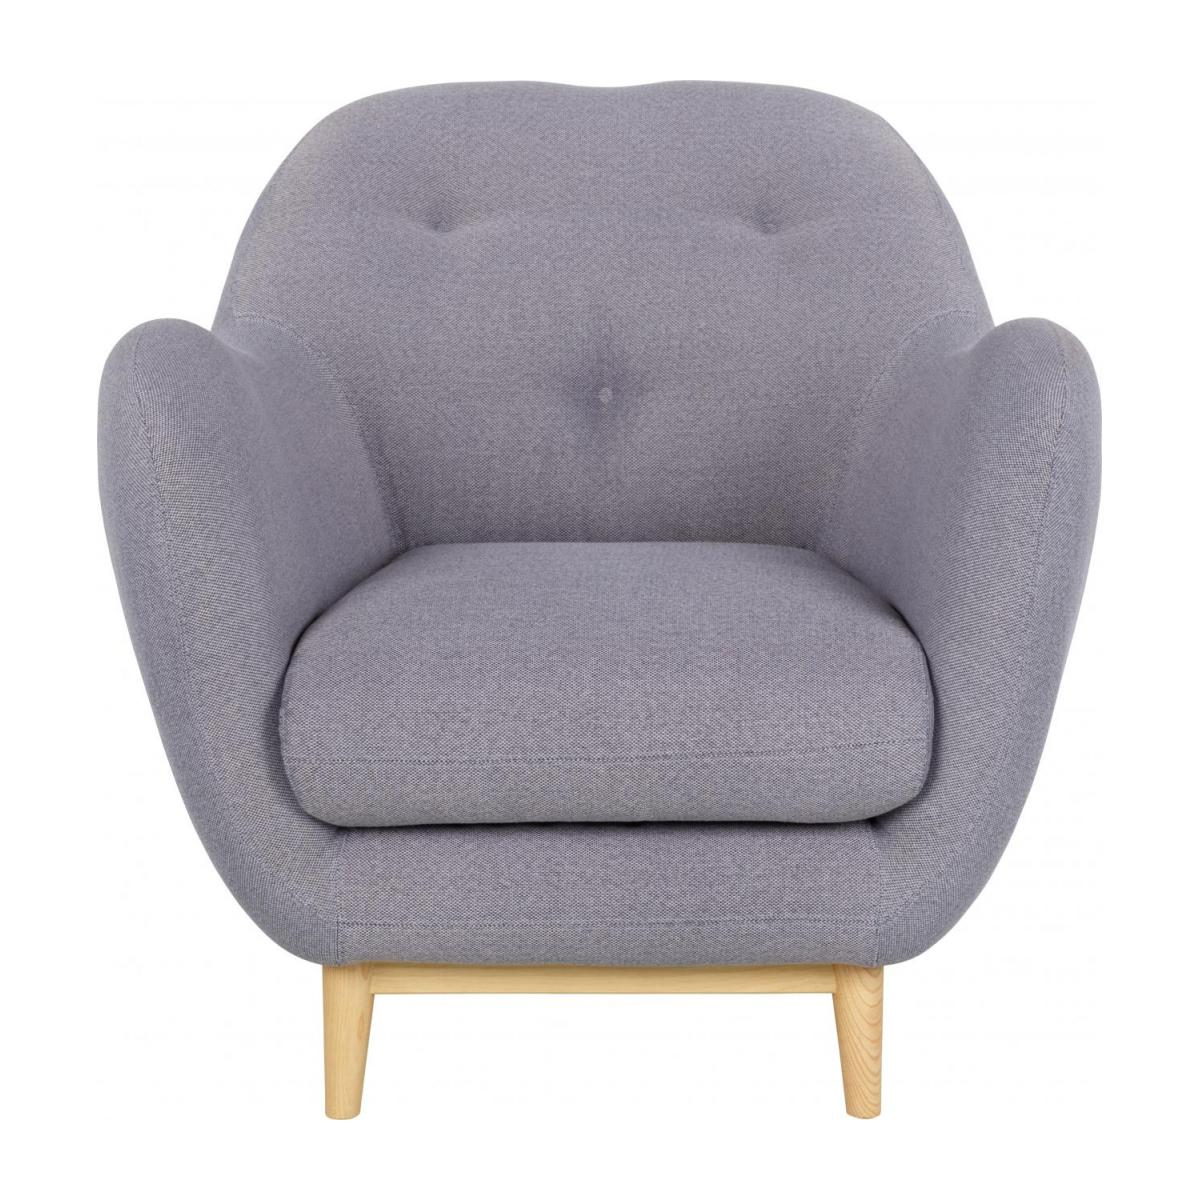 Armchair made of fabric, grey n°2